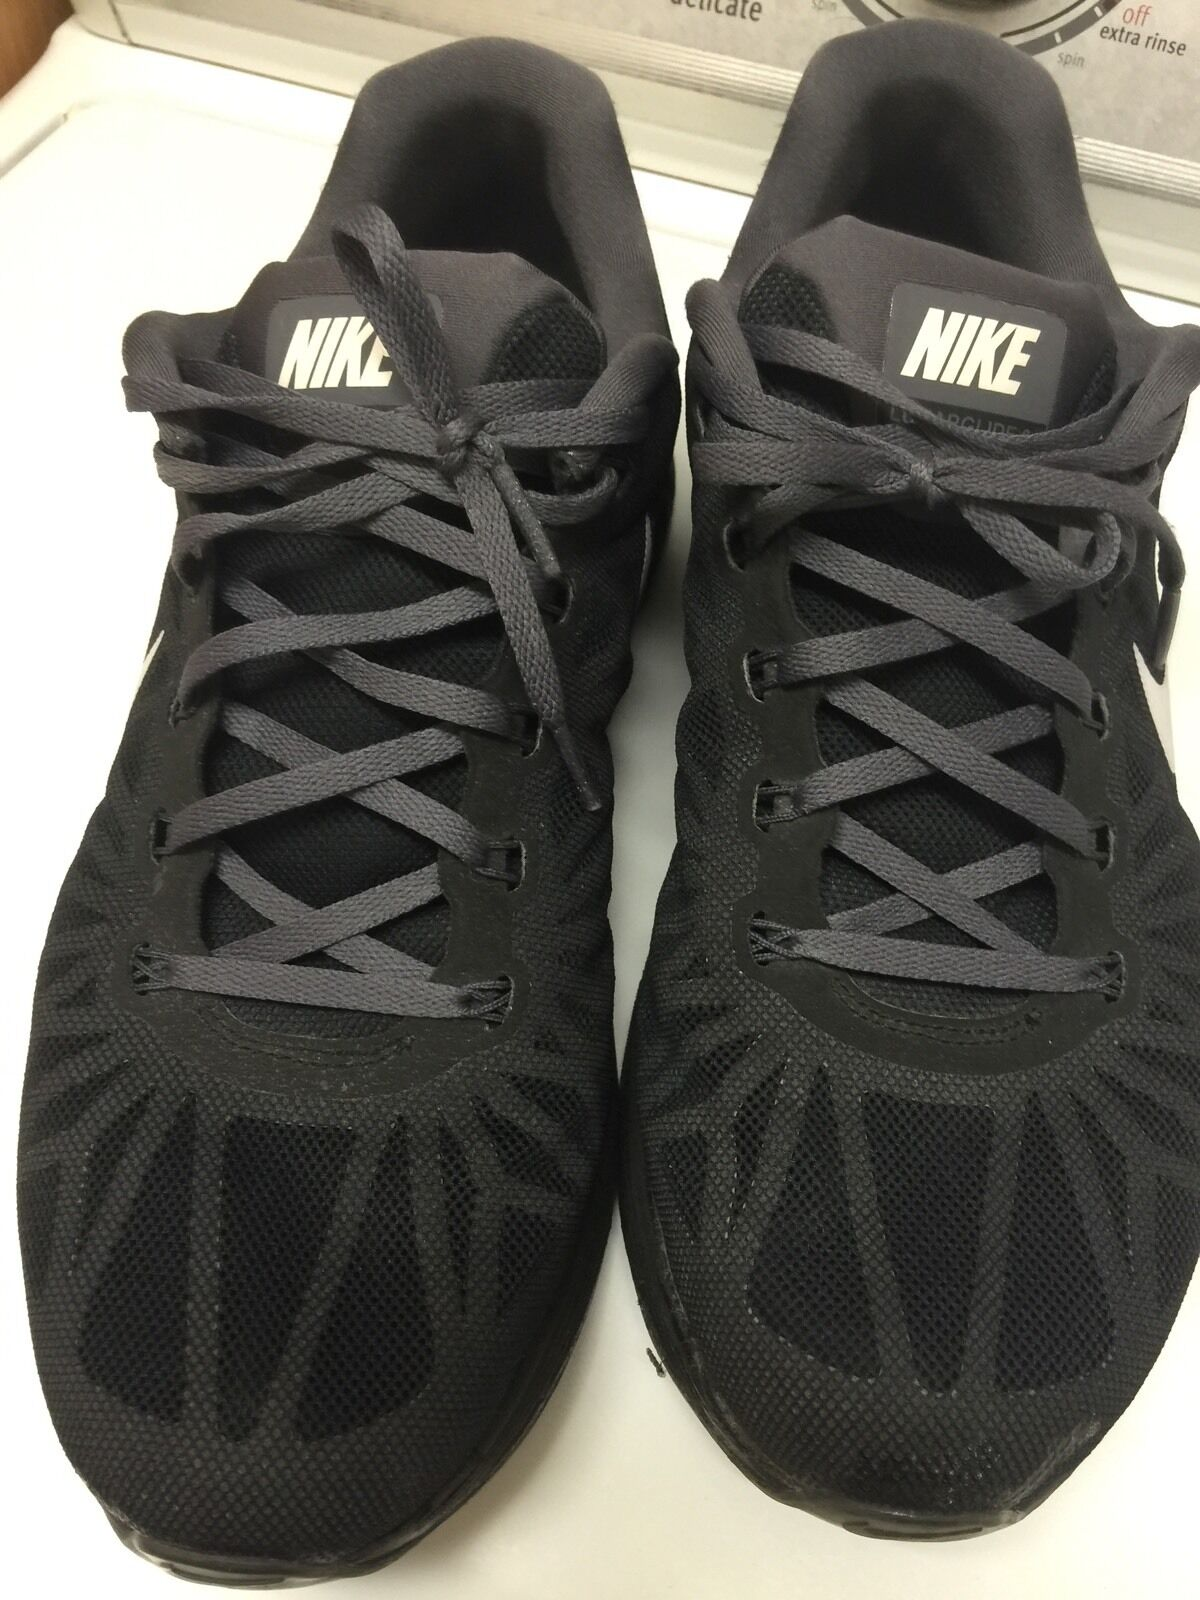 Nike ID Fitsole Running 11.5 Shoes Black Mens US 11.5 Running 9a59d1